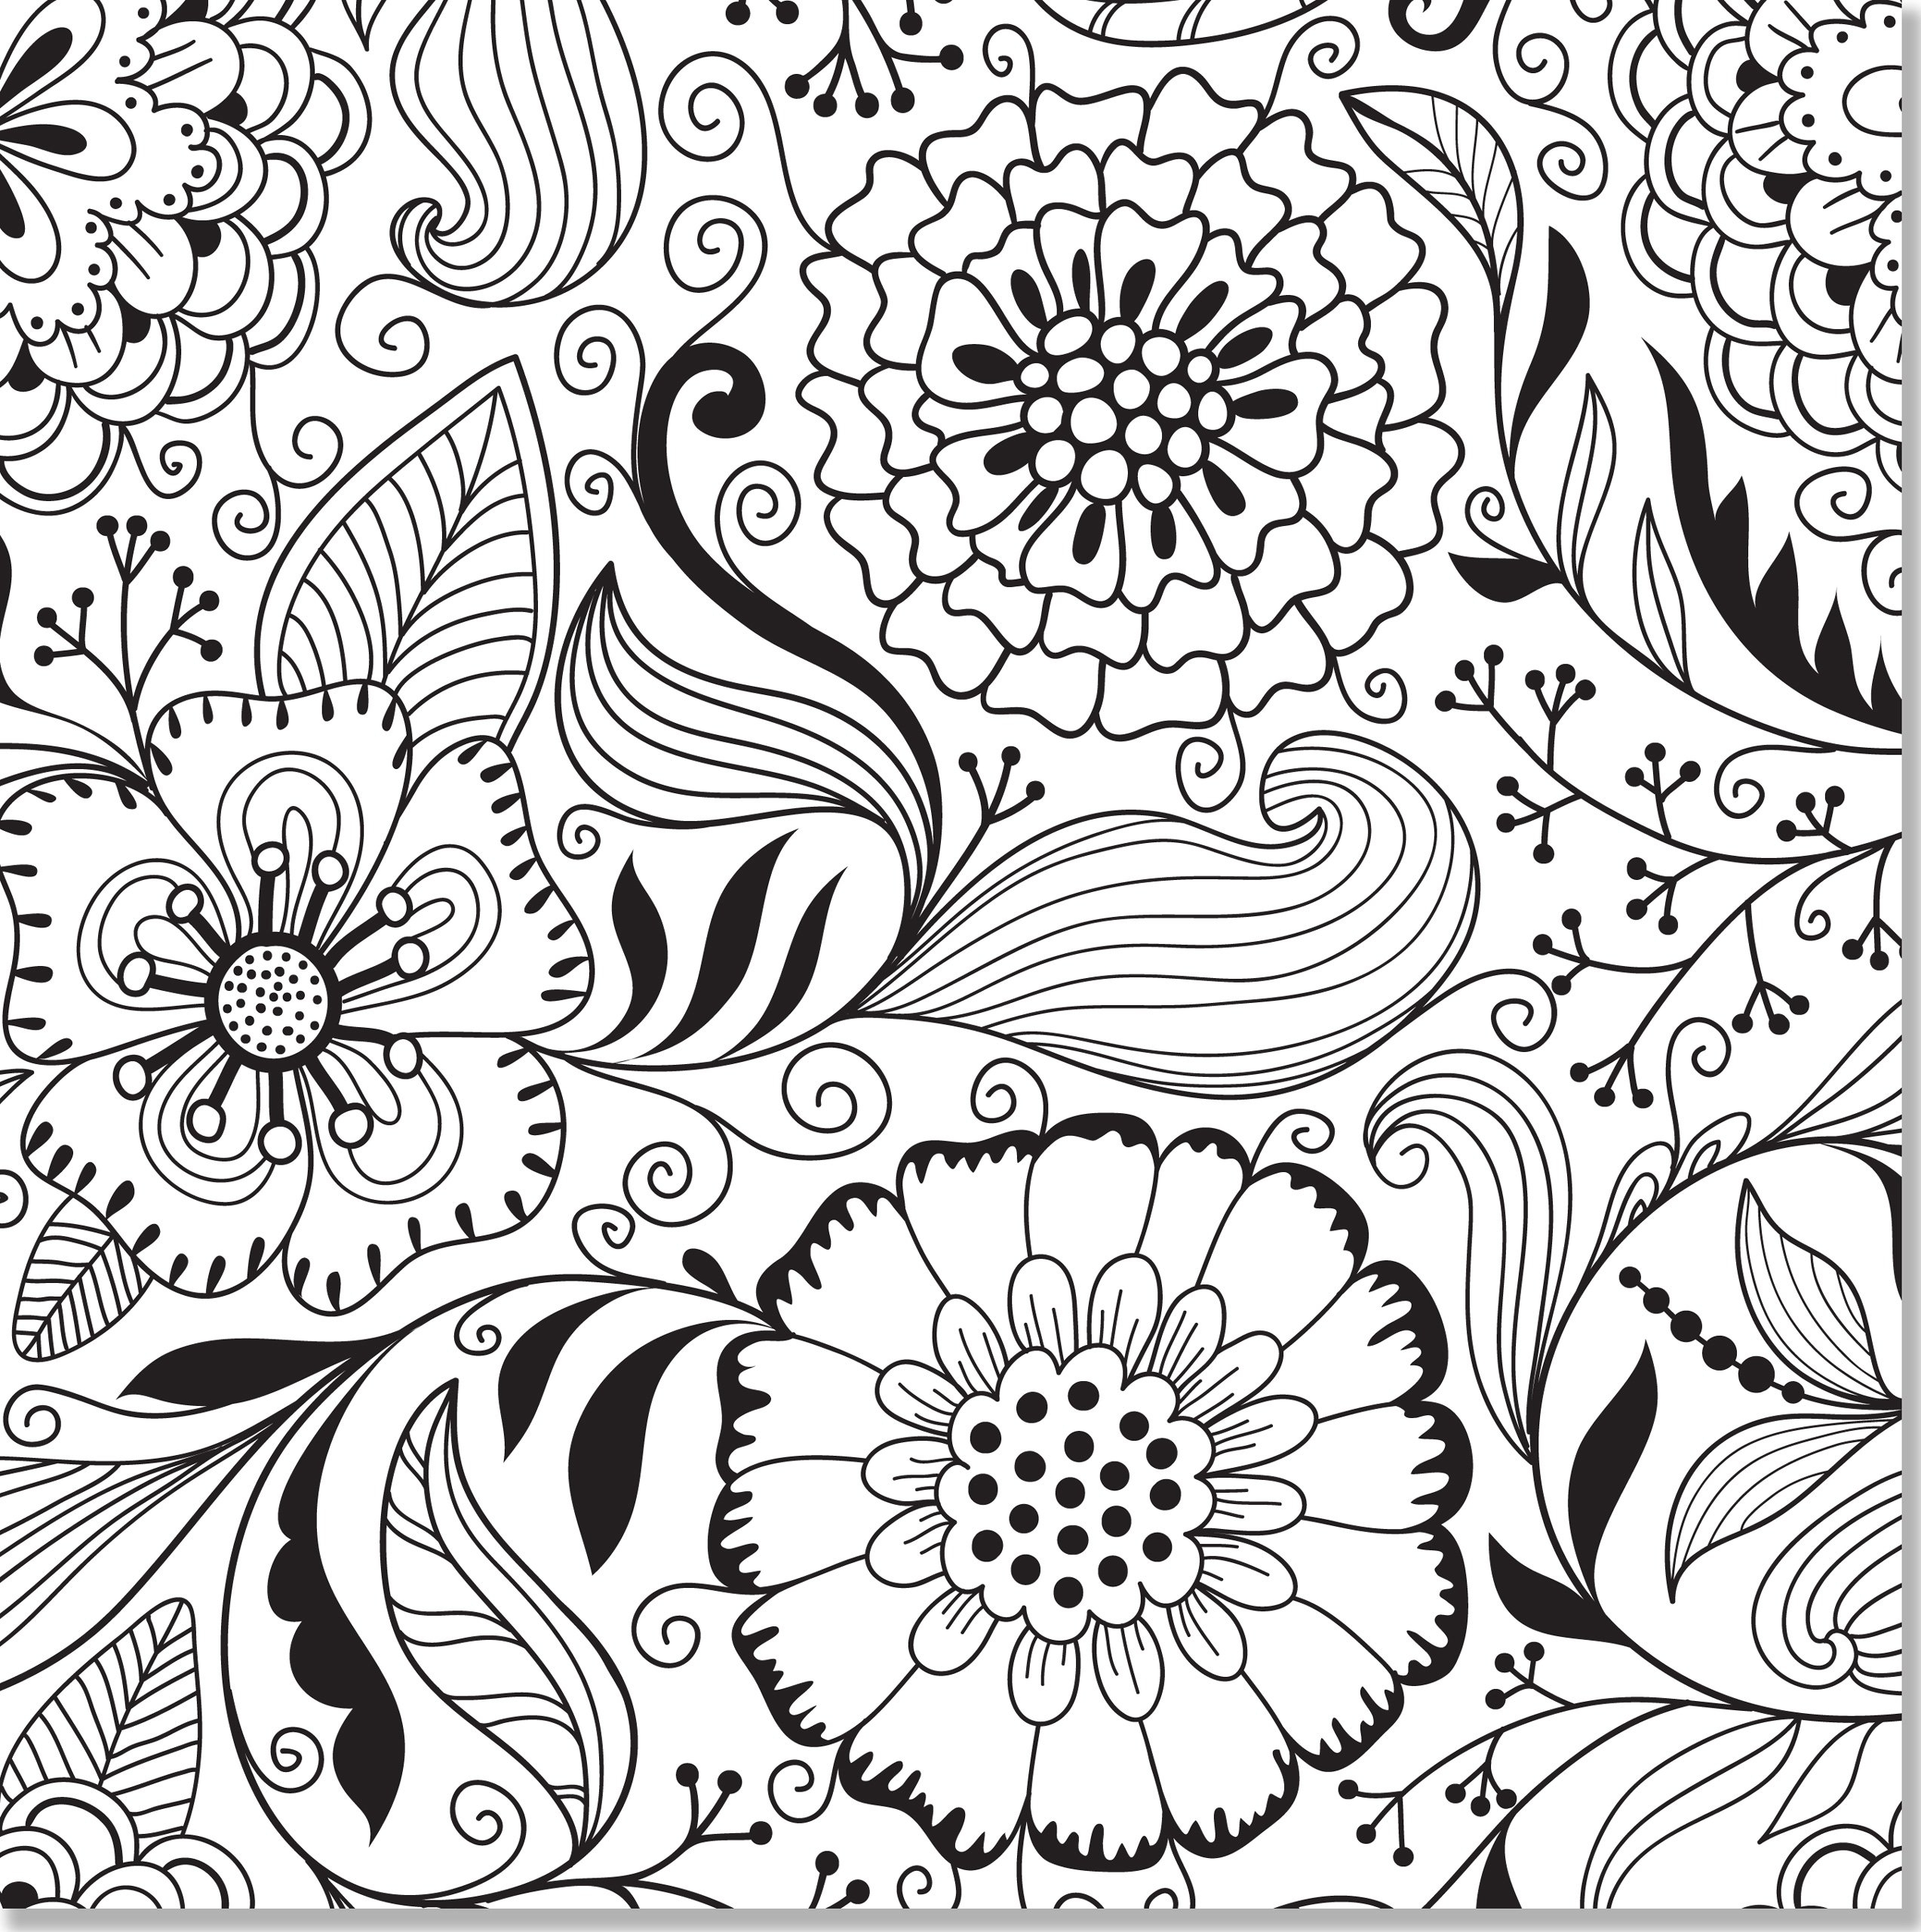 Blank Coloring Pages For Adults At Getdrawings Com Free For